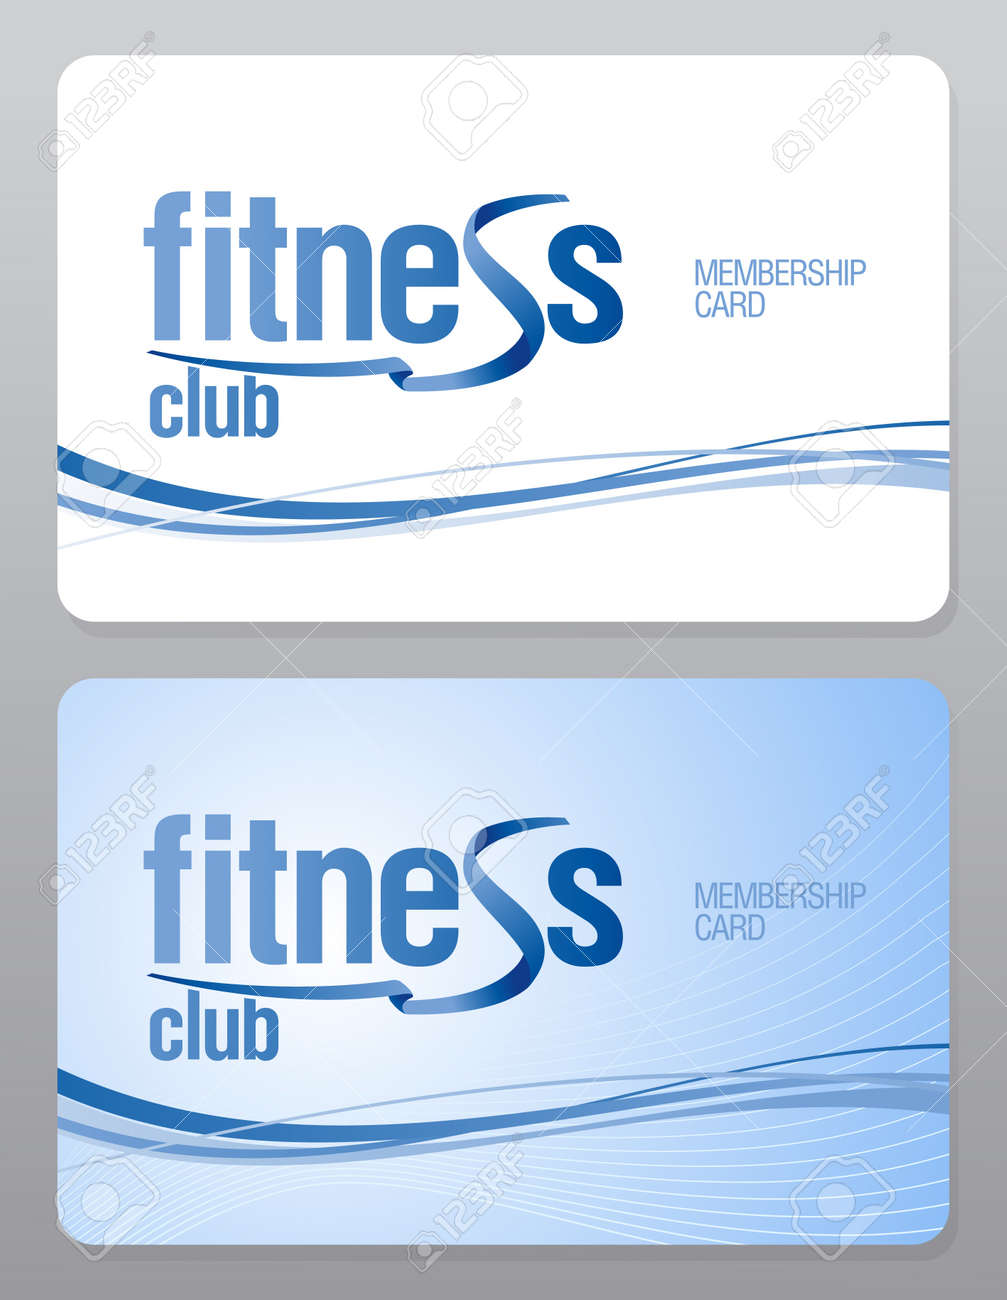 Fitness Club Membership Card Design Template Royalty Free – Membership Card Samples